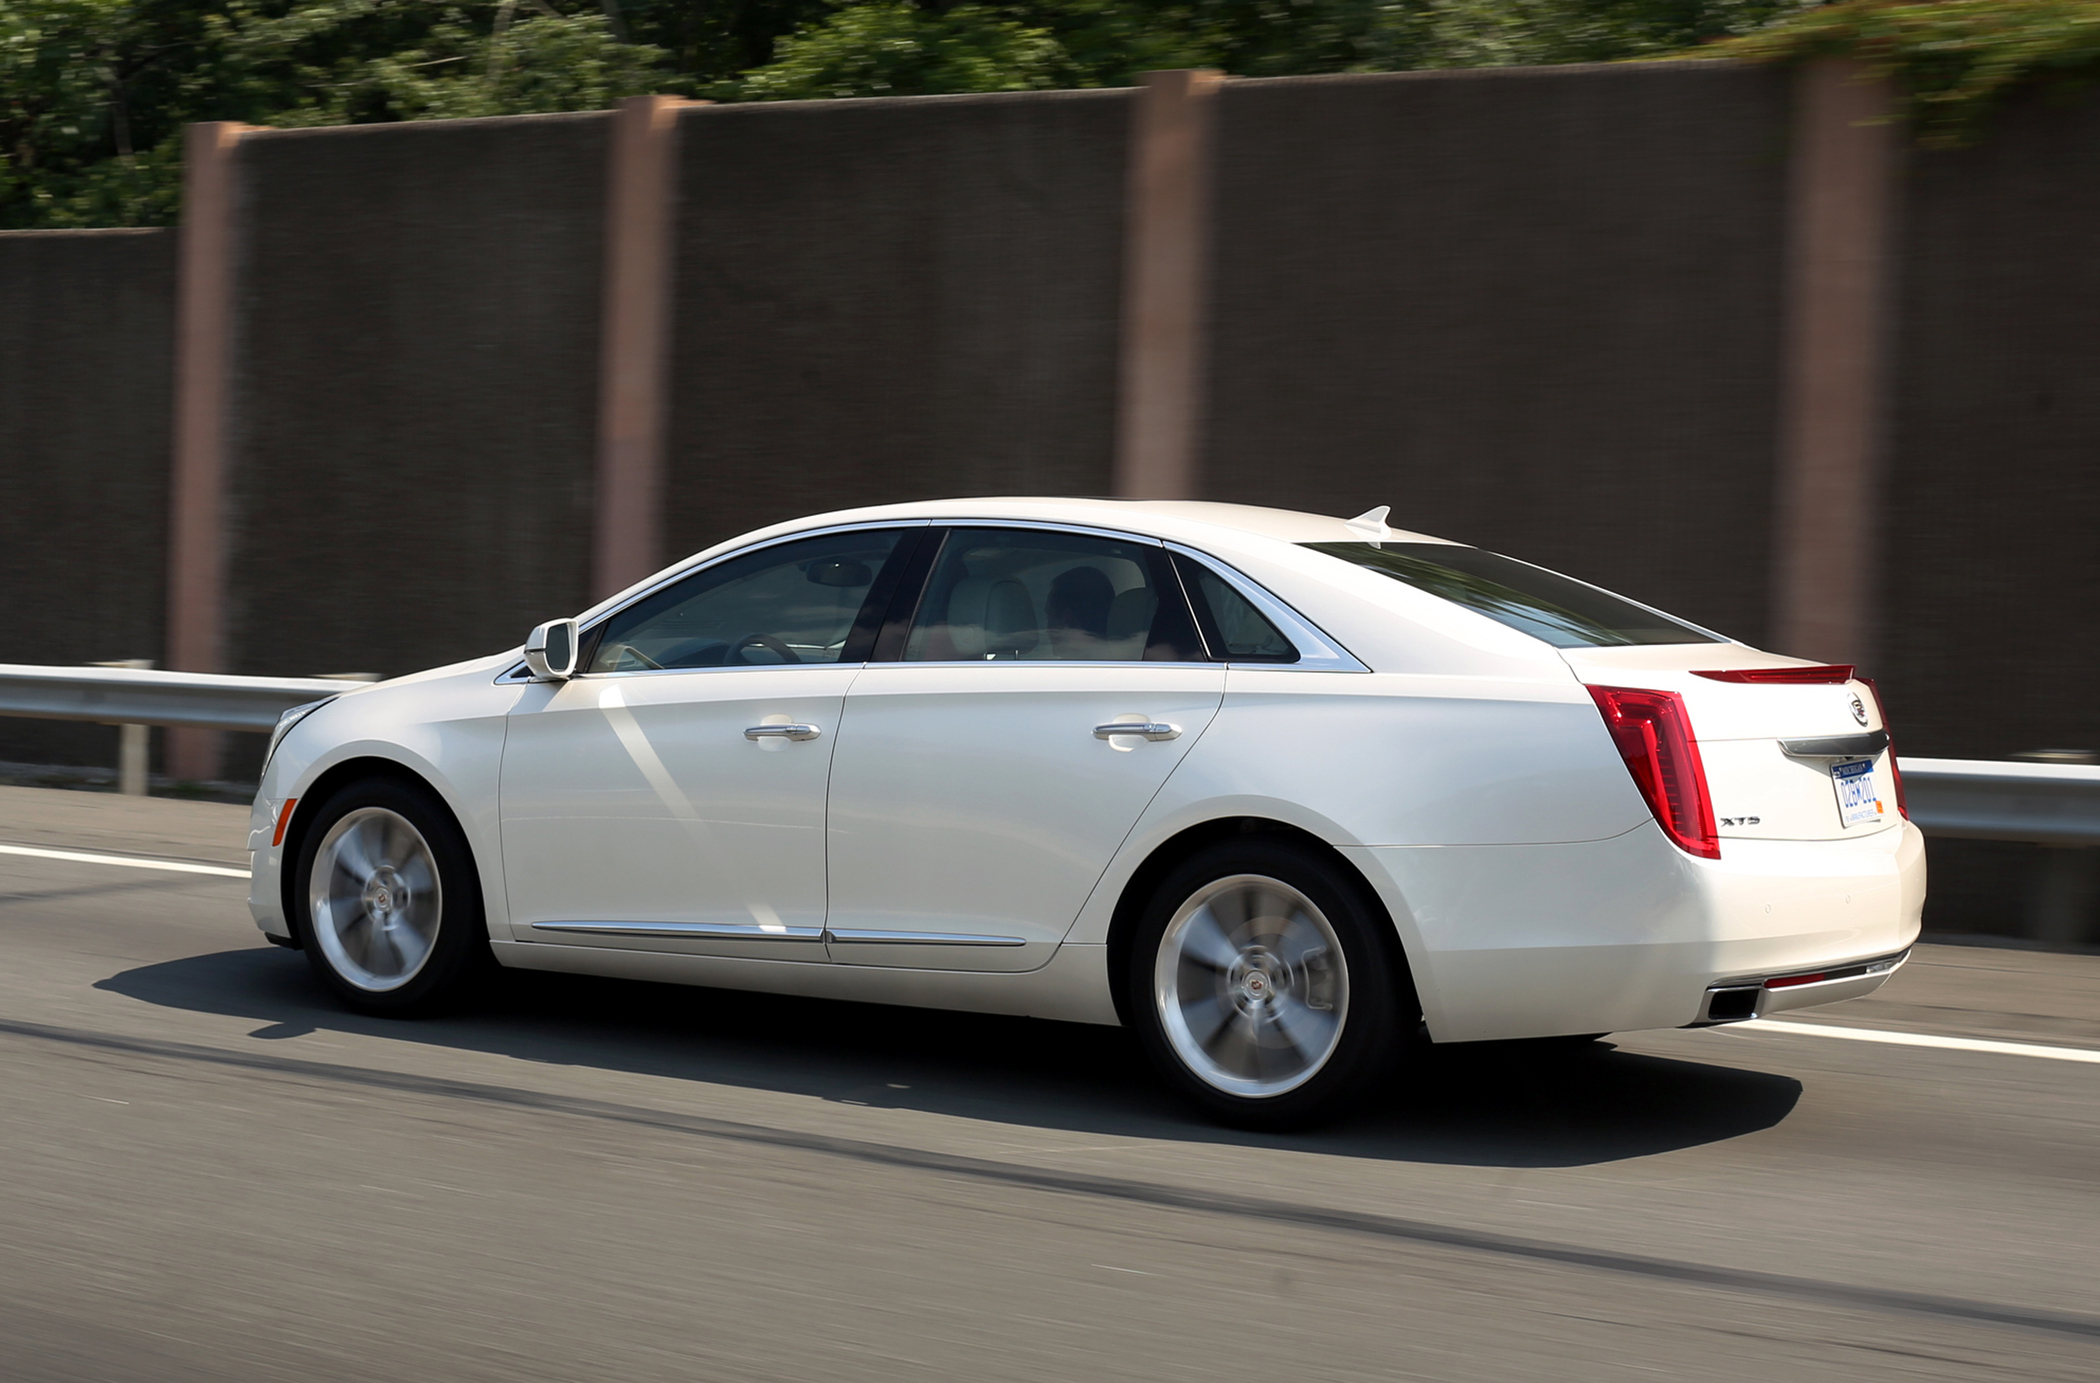 Cadillac We Do Large Sedans Well Down The Road Groovecar